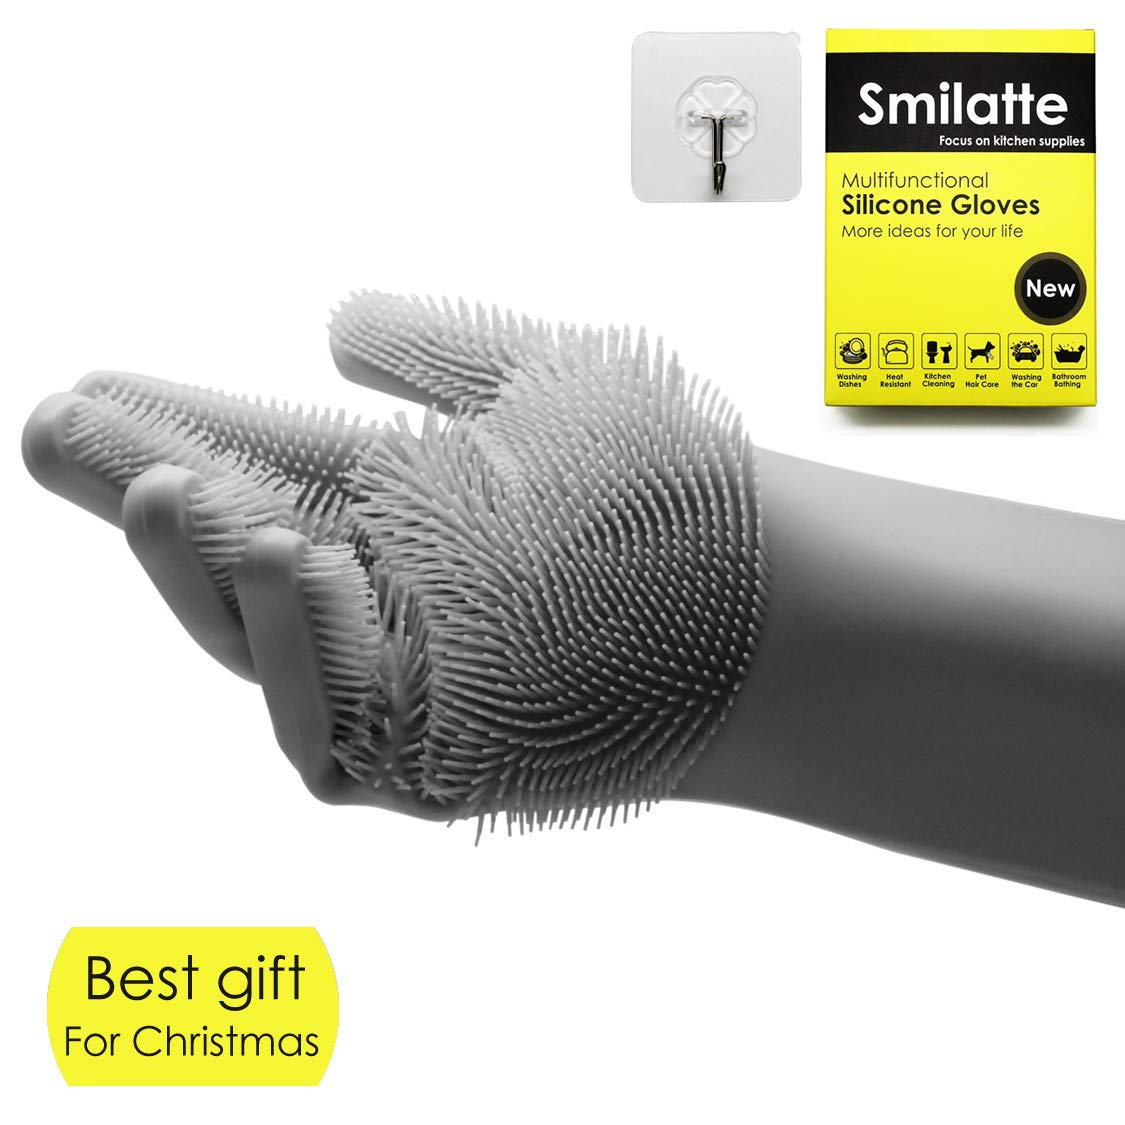 Smilatte Reusable Magic Silicone Gloves with Wash Scrubber, Heat Resistant, for Cleaning, Household, Dishwashing, Washing the Car, Pet Hair Care, (1 Pack Suitable for right hand, A Free Hook), Green